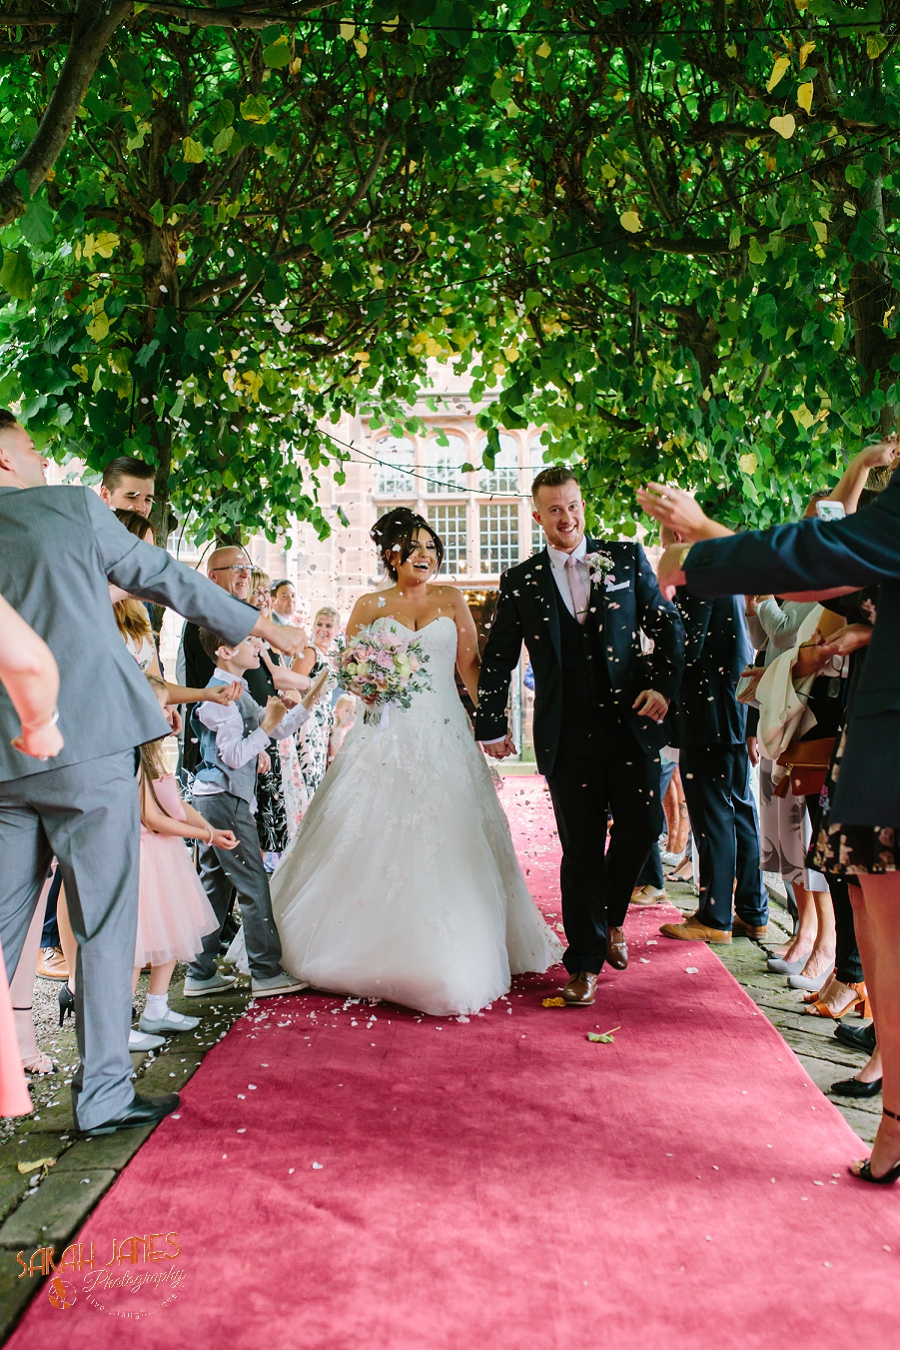 Wedding photography at thornton Manor, Manor house wedding, Sarah Janes photography, Documentray wedding photography Wirral_0015.jpg